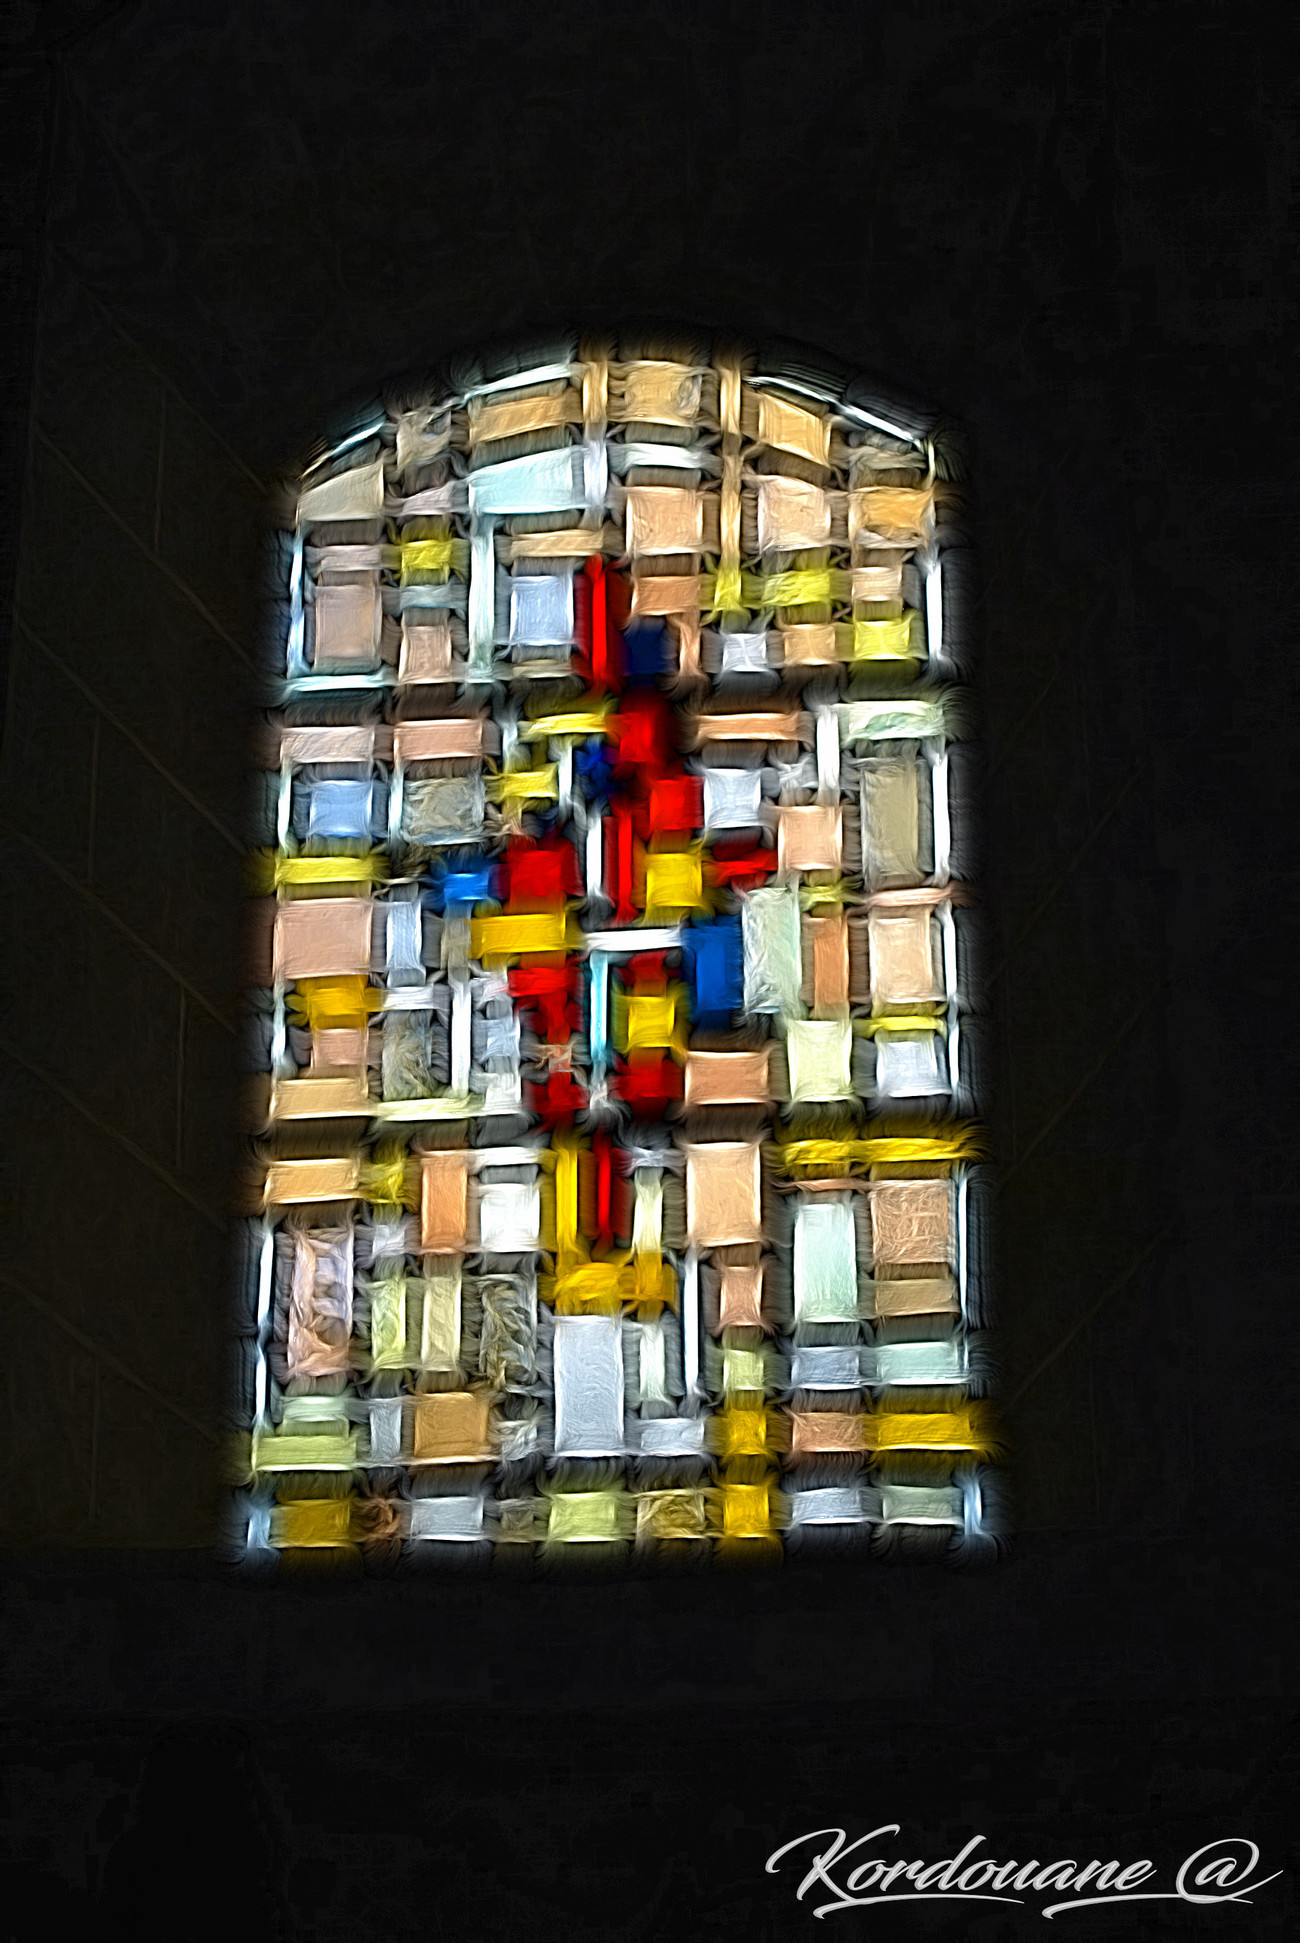 Vitrail - Stained glass window